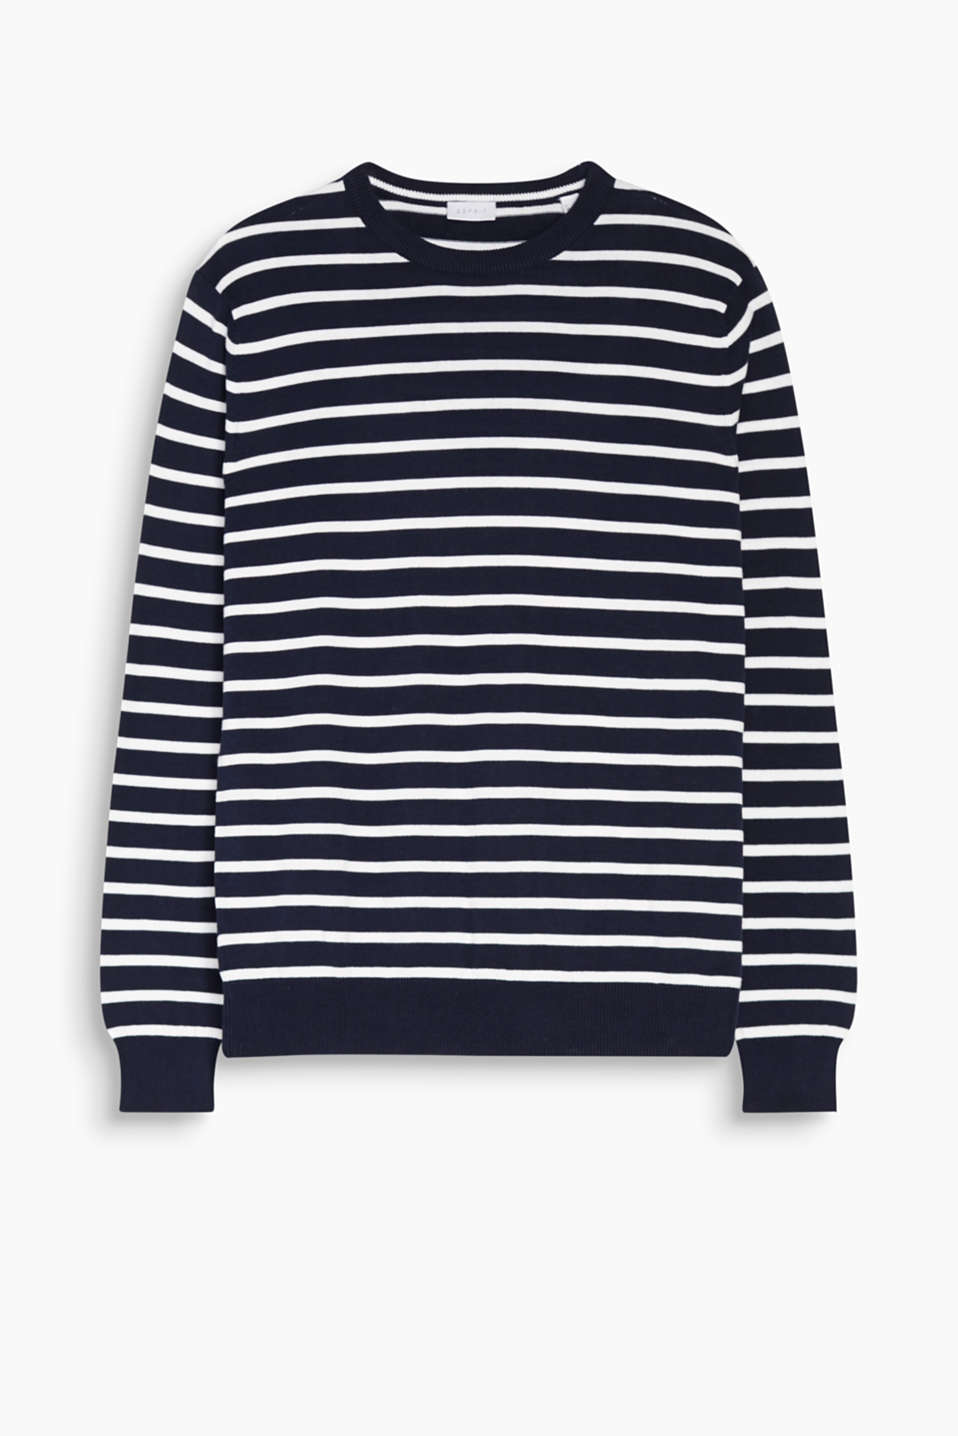 Fine knit jumper with stripes and ribbed borders on the round neckline and sleeve ends in 100% cotton